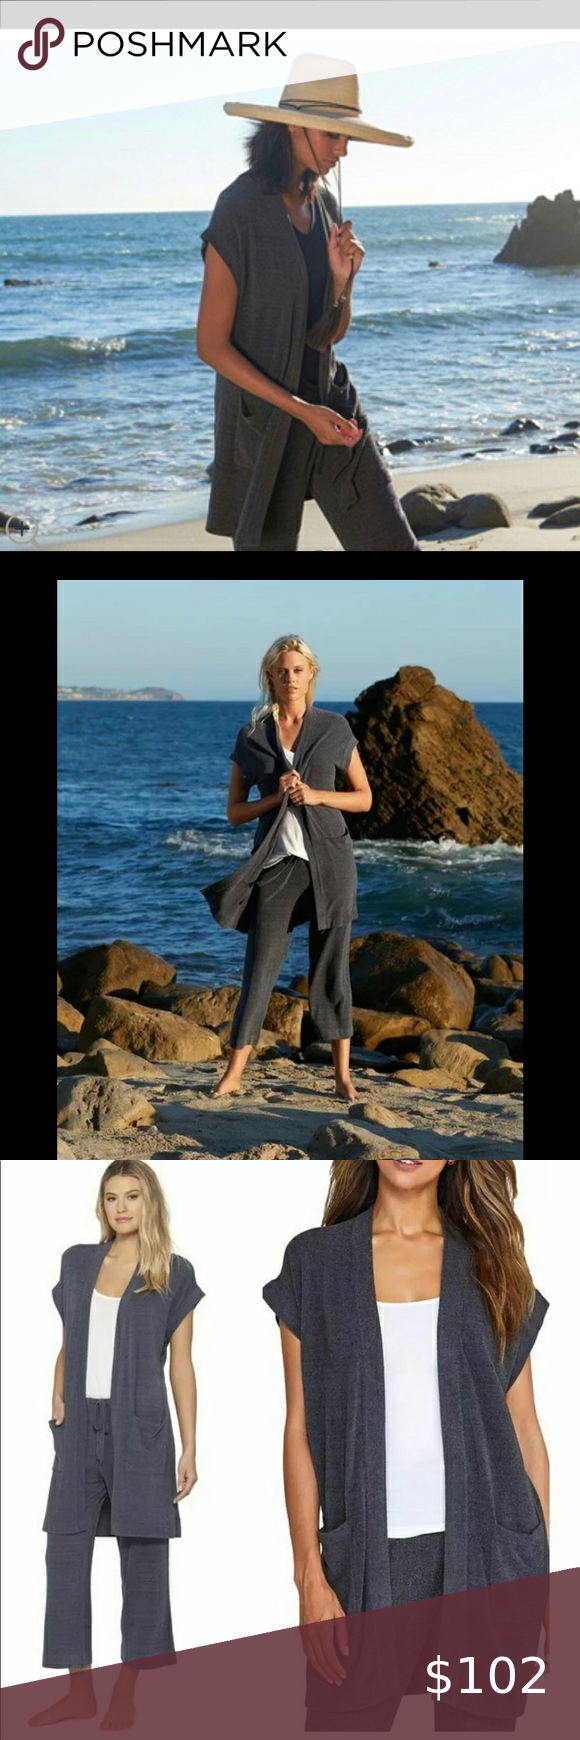 Barefoot Dreams grey sleeveless cardigan/Brand New Barefoot Dreams ultra lite grey sleeveless cardigan/Brand New With Tags .. the cozy chic ultra lite knit fabric is so luxurious soft , you'll NEVER want to take it off , but don't worry no one is saying you have to , your closet is screaming for this amazing piece Barefoot Dreams Sweaters Cardigans